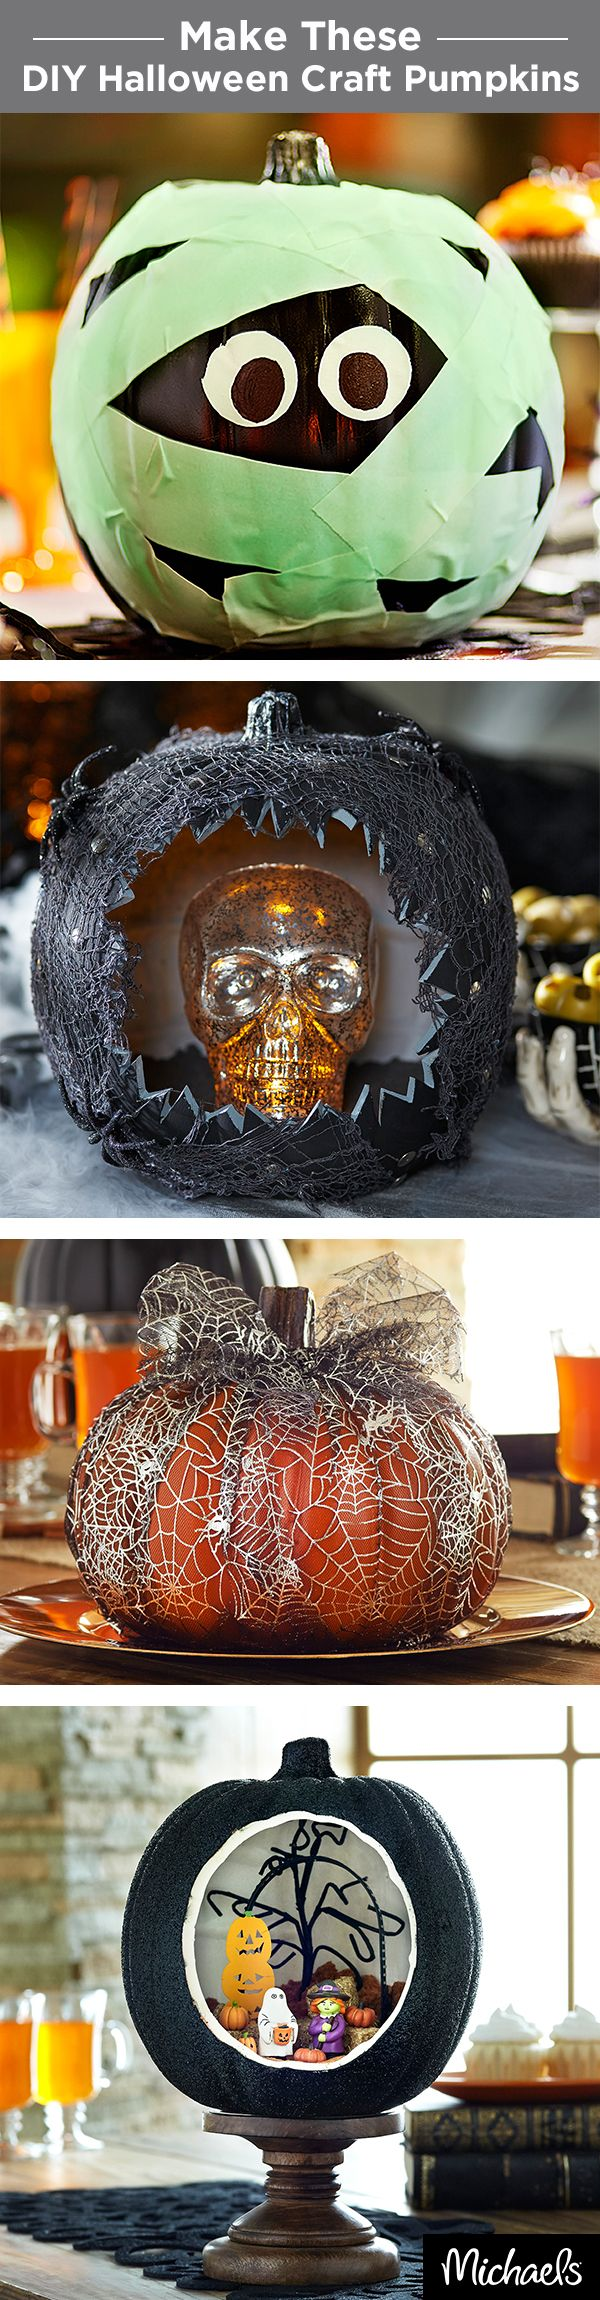 Make DIY craft pumpkins that last year after year. From a glow in the dark mummy to a mini diorama, there are tons of ways to decorate craft pumpkins. Get everything you need at your local Michaels.